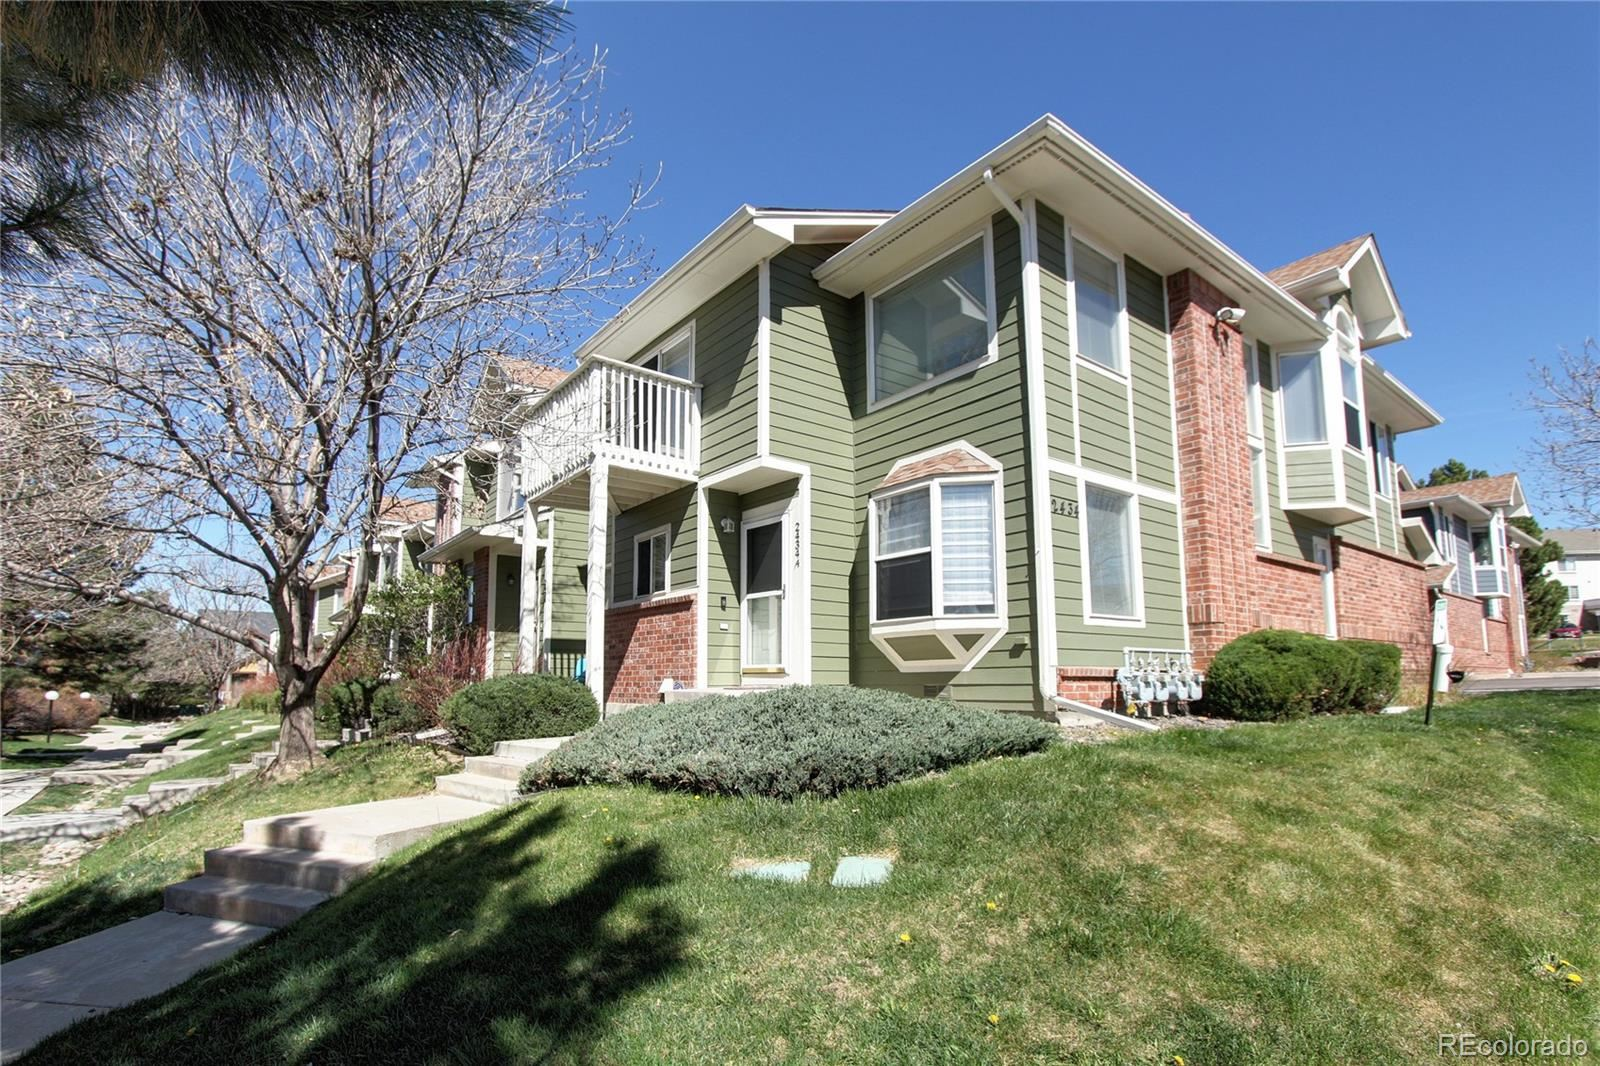 2434 W 82nd Place #A, Westminster, CO 80031 - #: 6775401